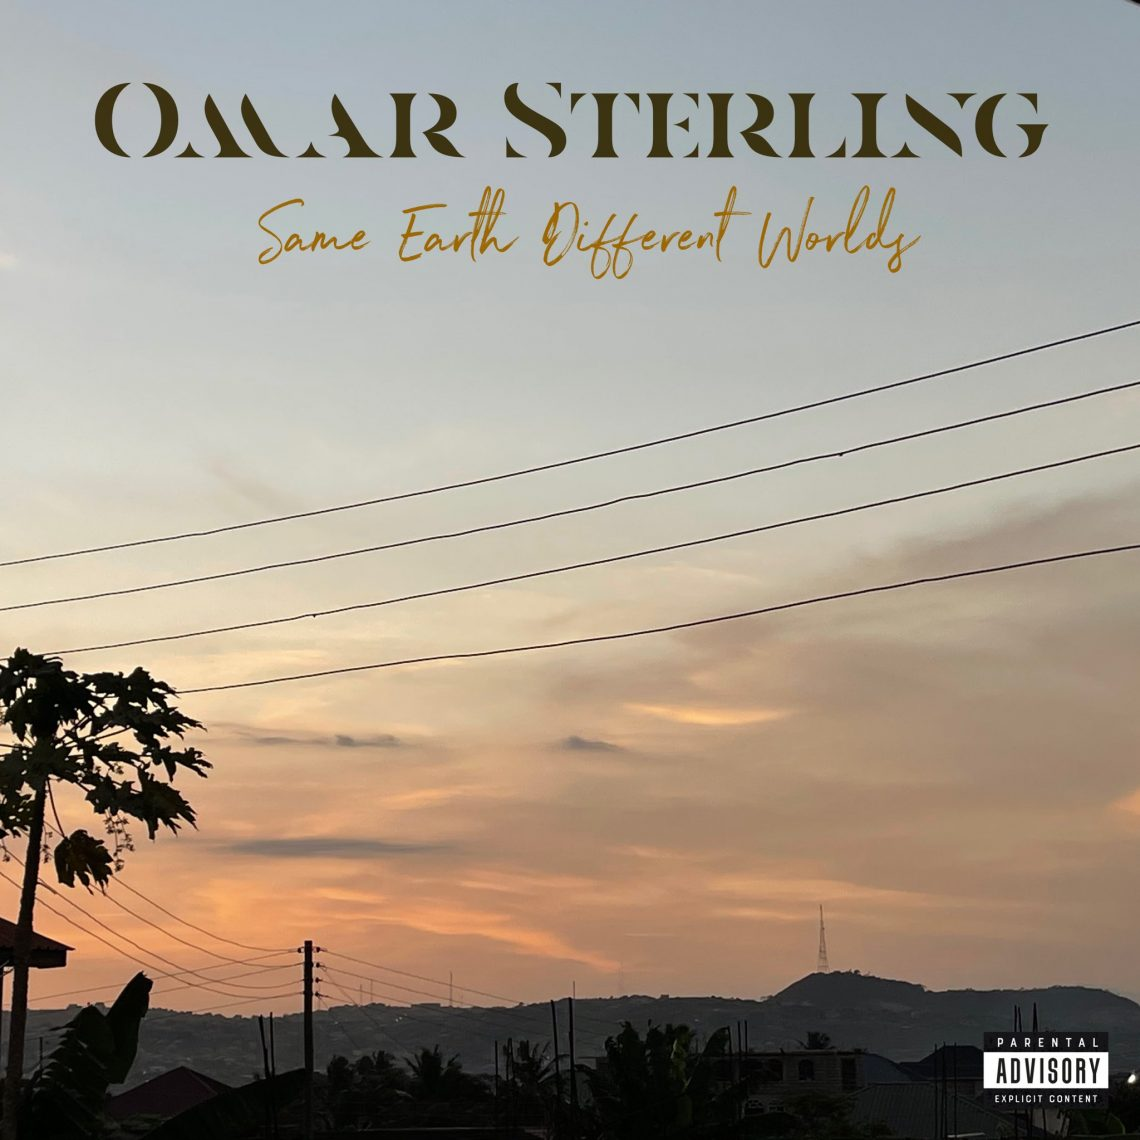 Omar Sterling – A Mountain Full Of Gold 1